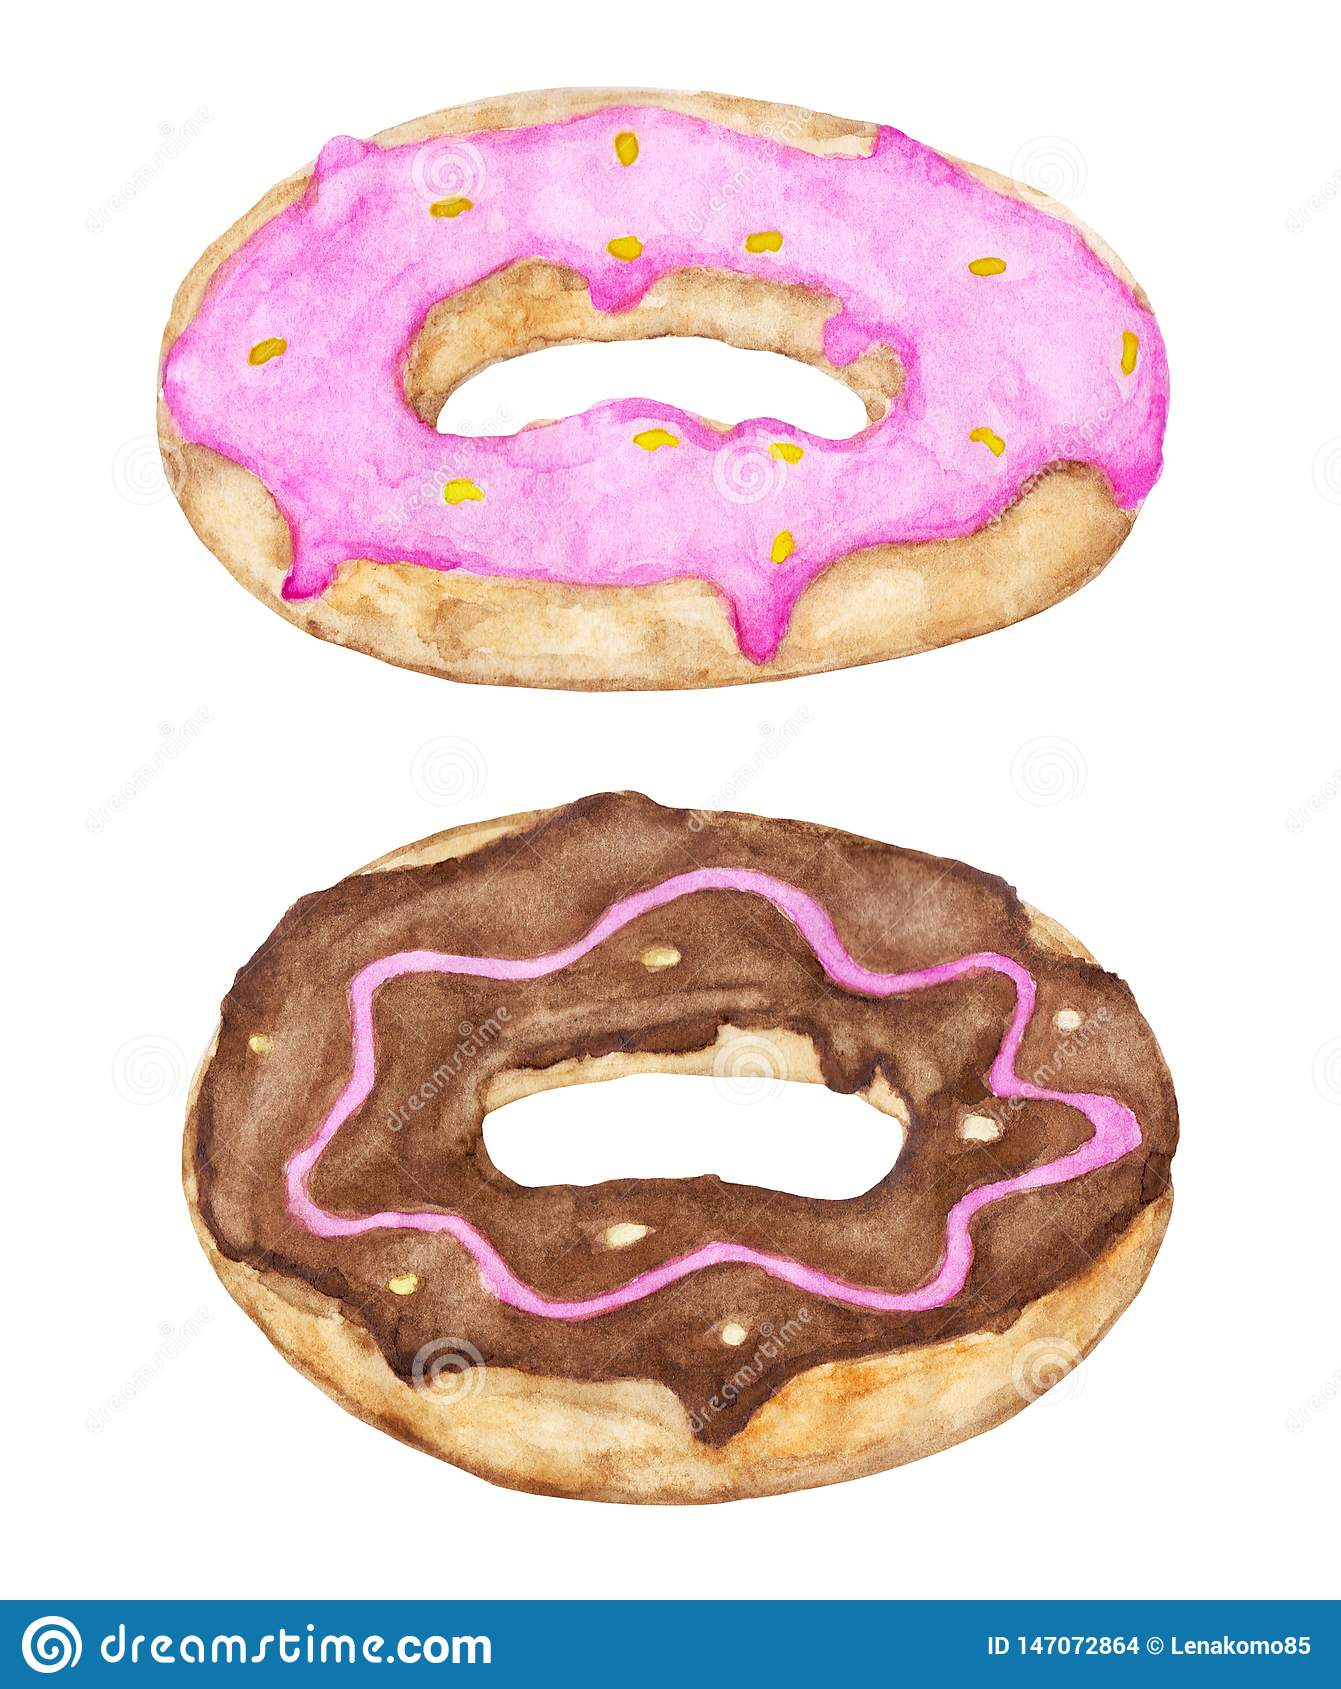 Two glazed donuts with pink and chocolate topping.